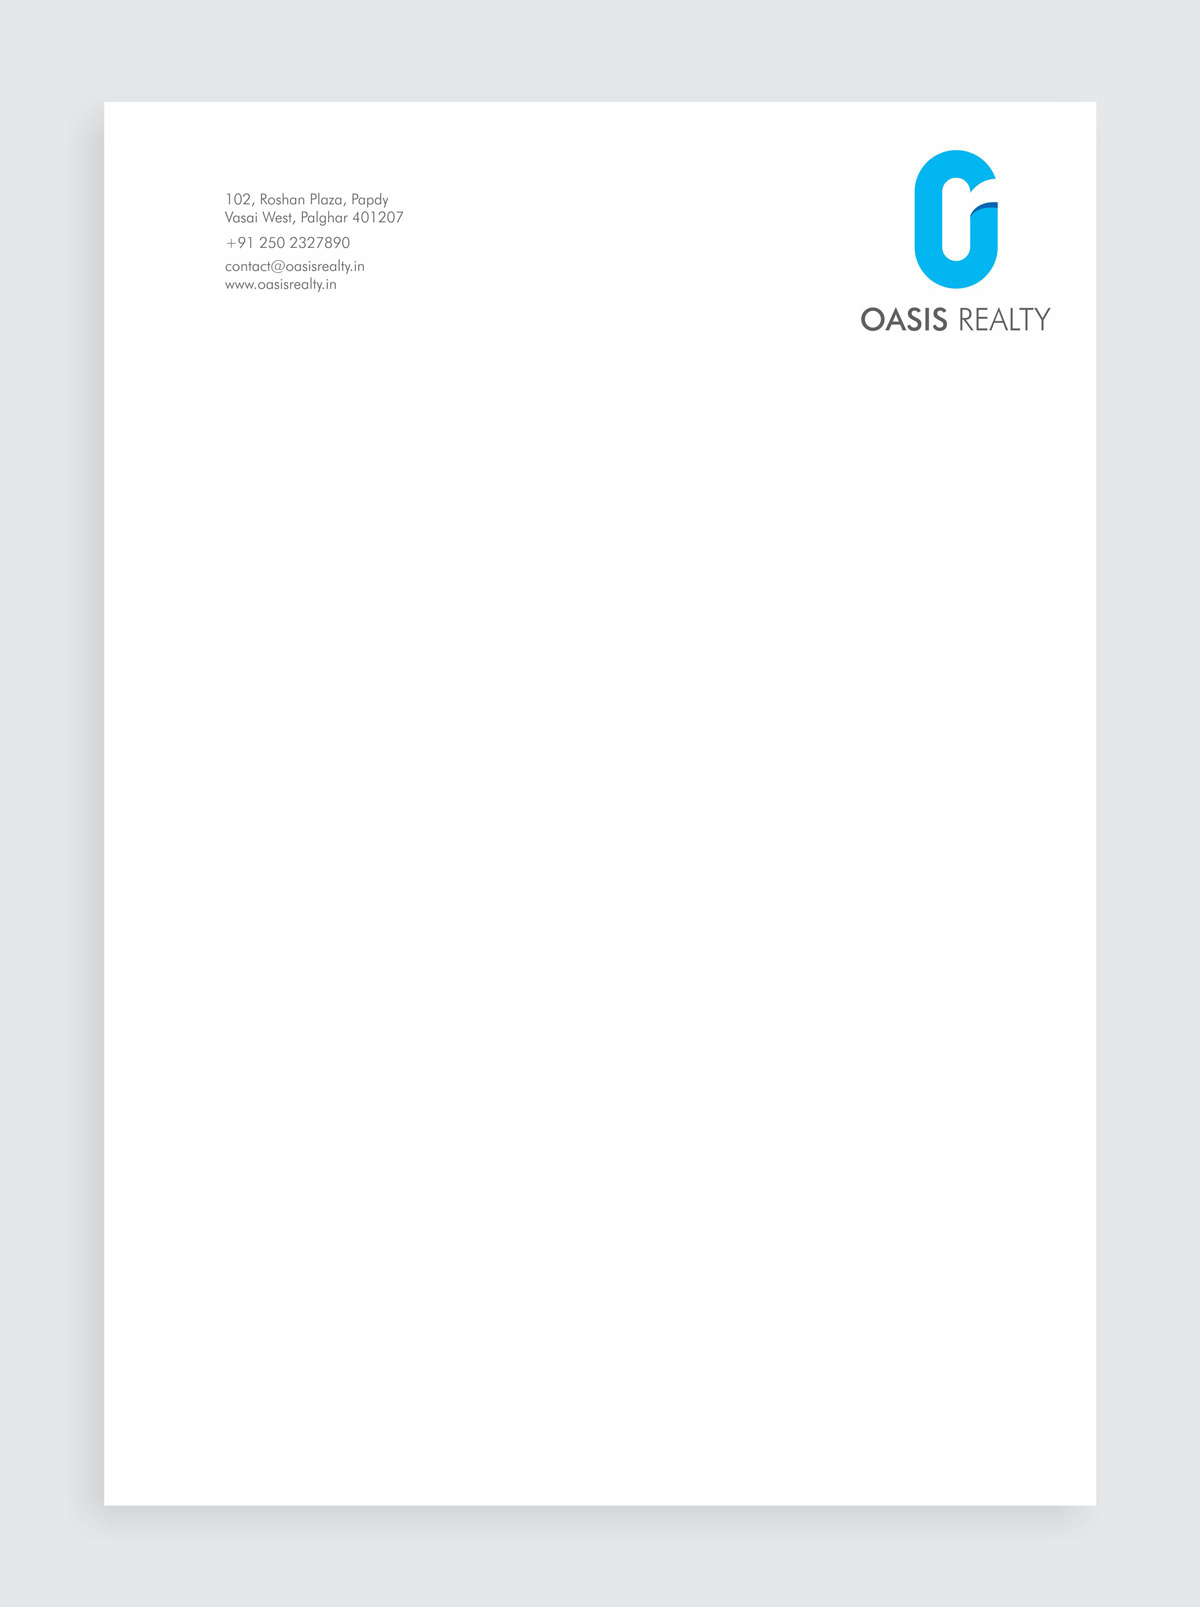 letter head design for realty company